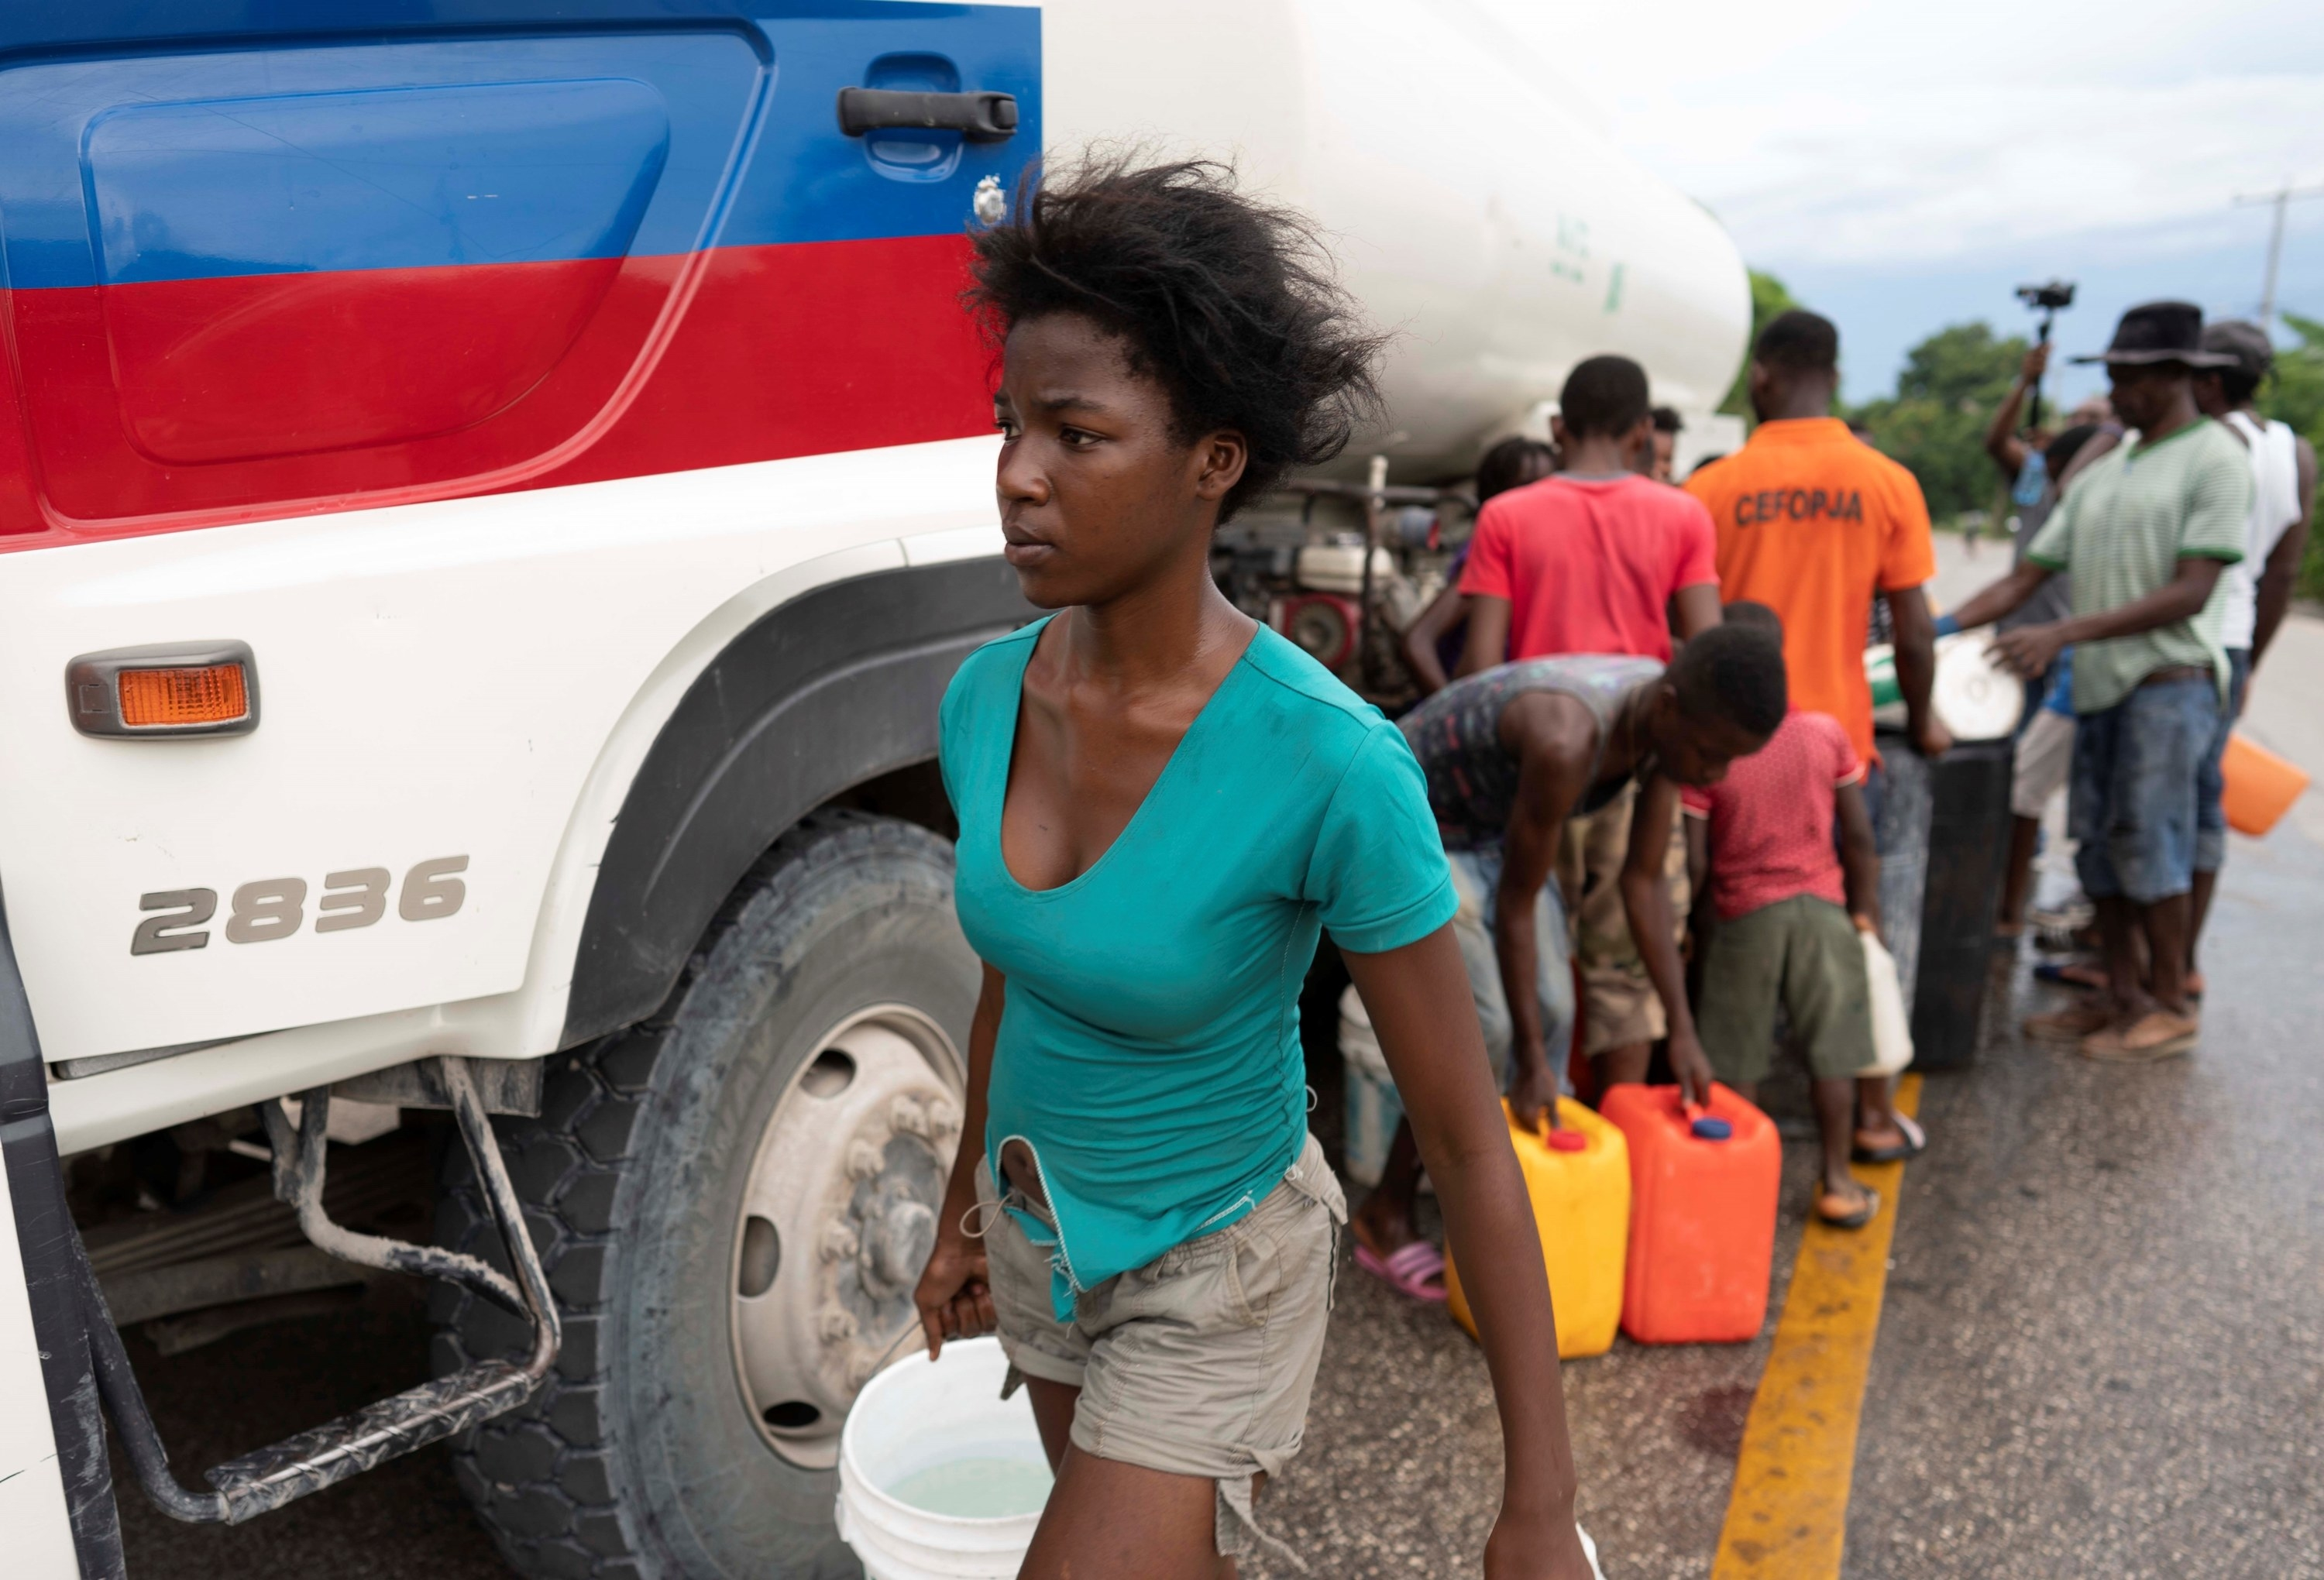 A woman walks with a bucket of water from a group of people filling up cans and buckets from a tank truck